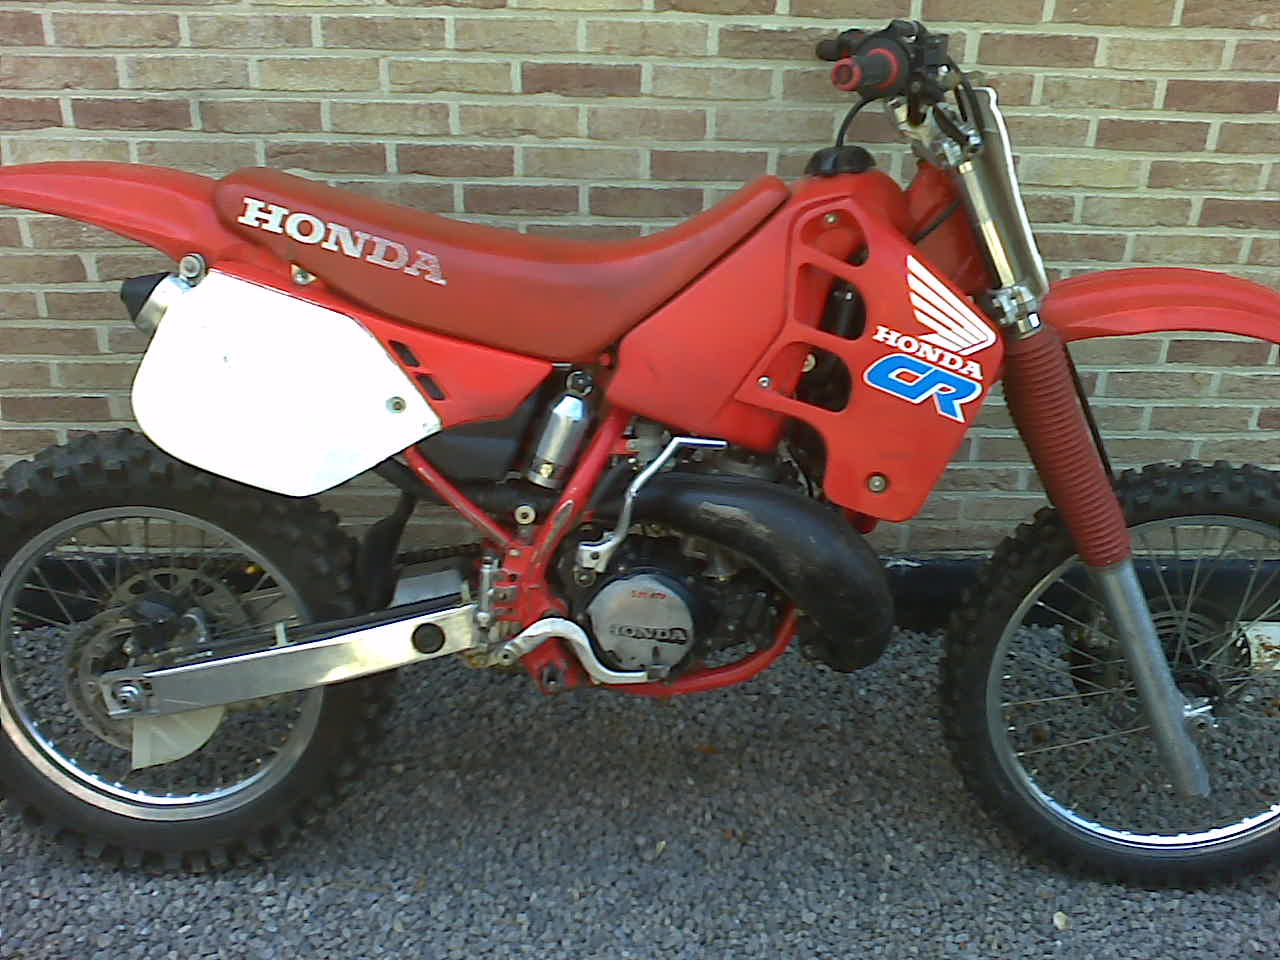 hight resolution of  710 for sale good original condition cr250 1988